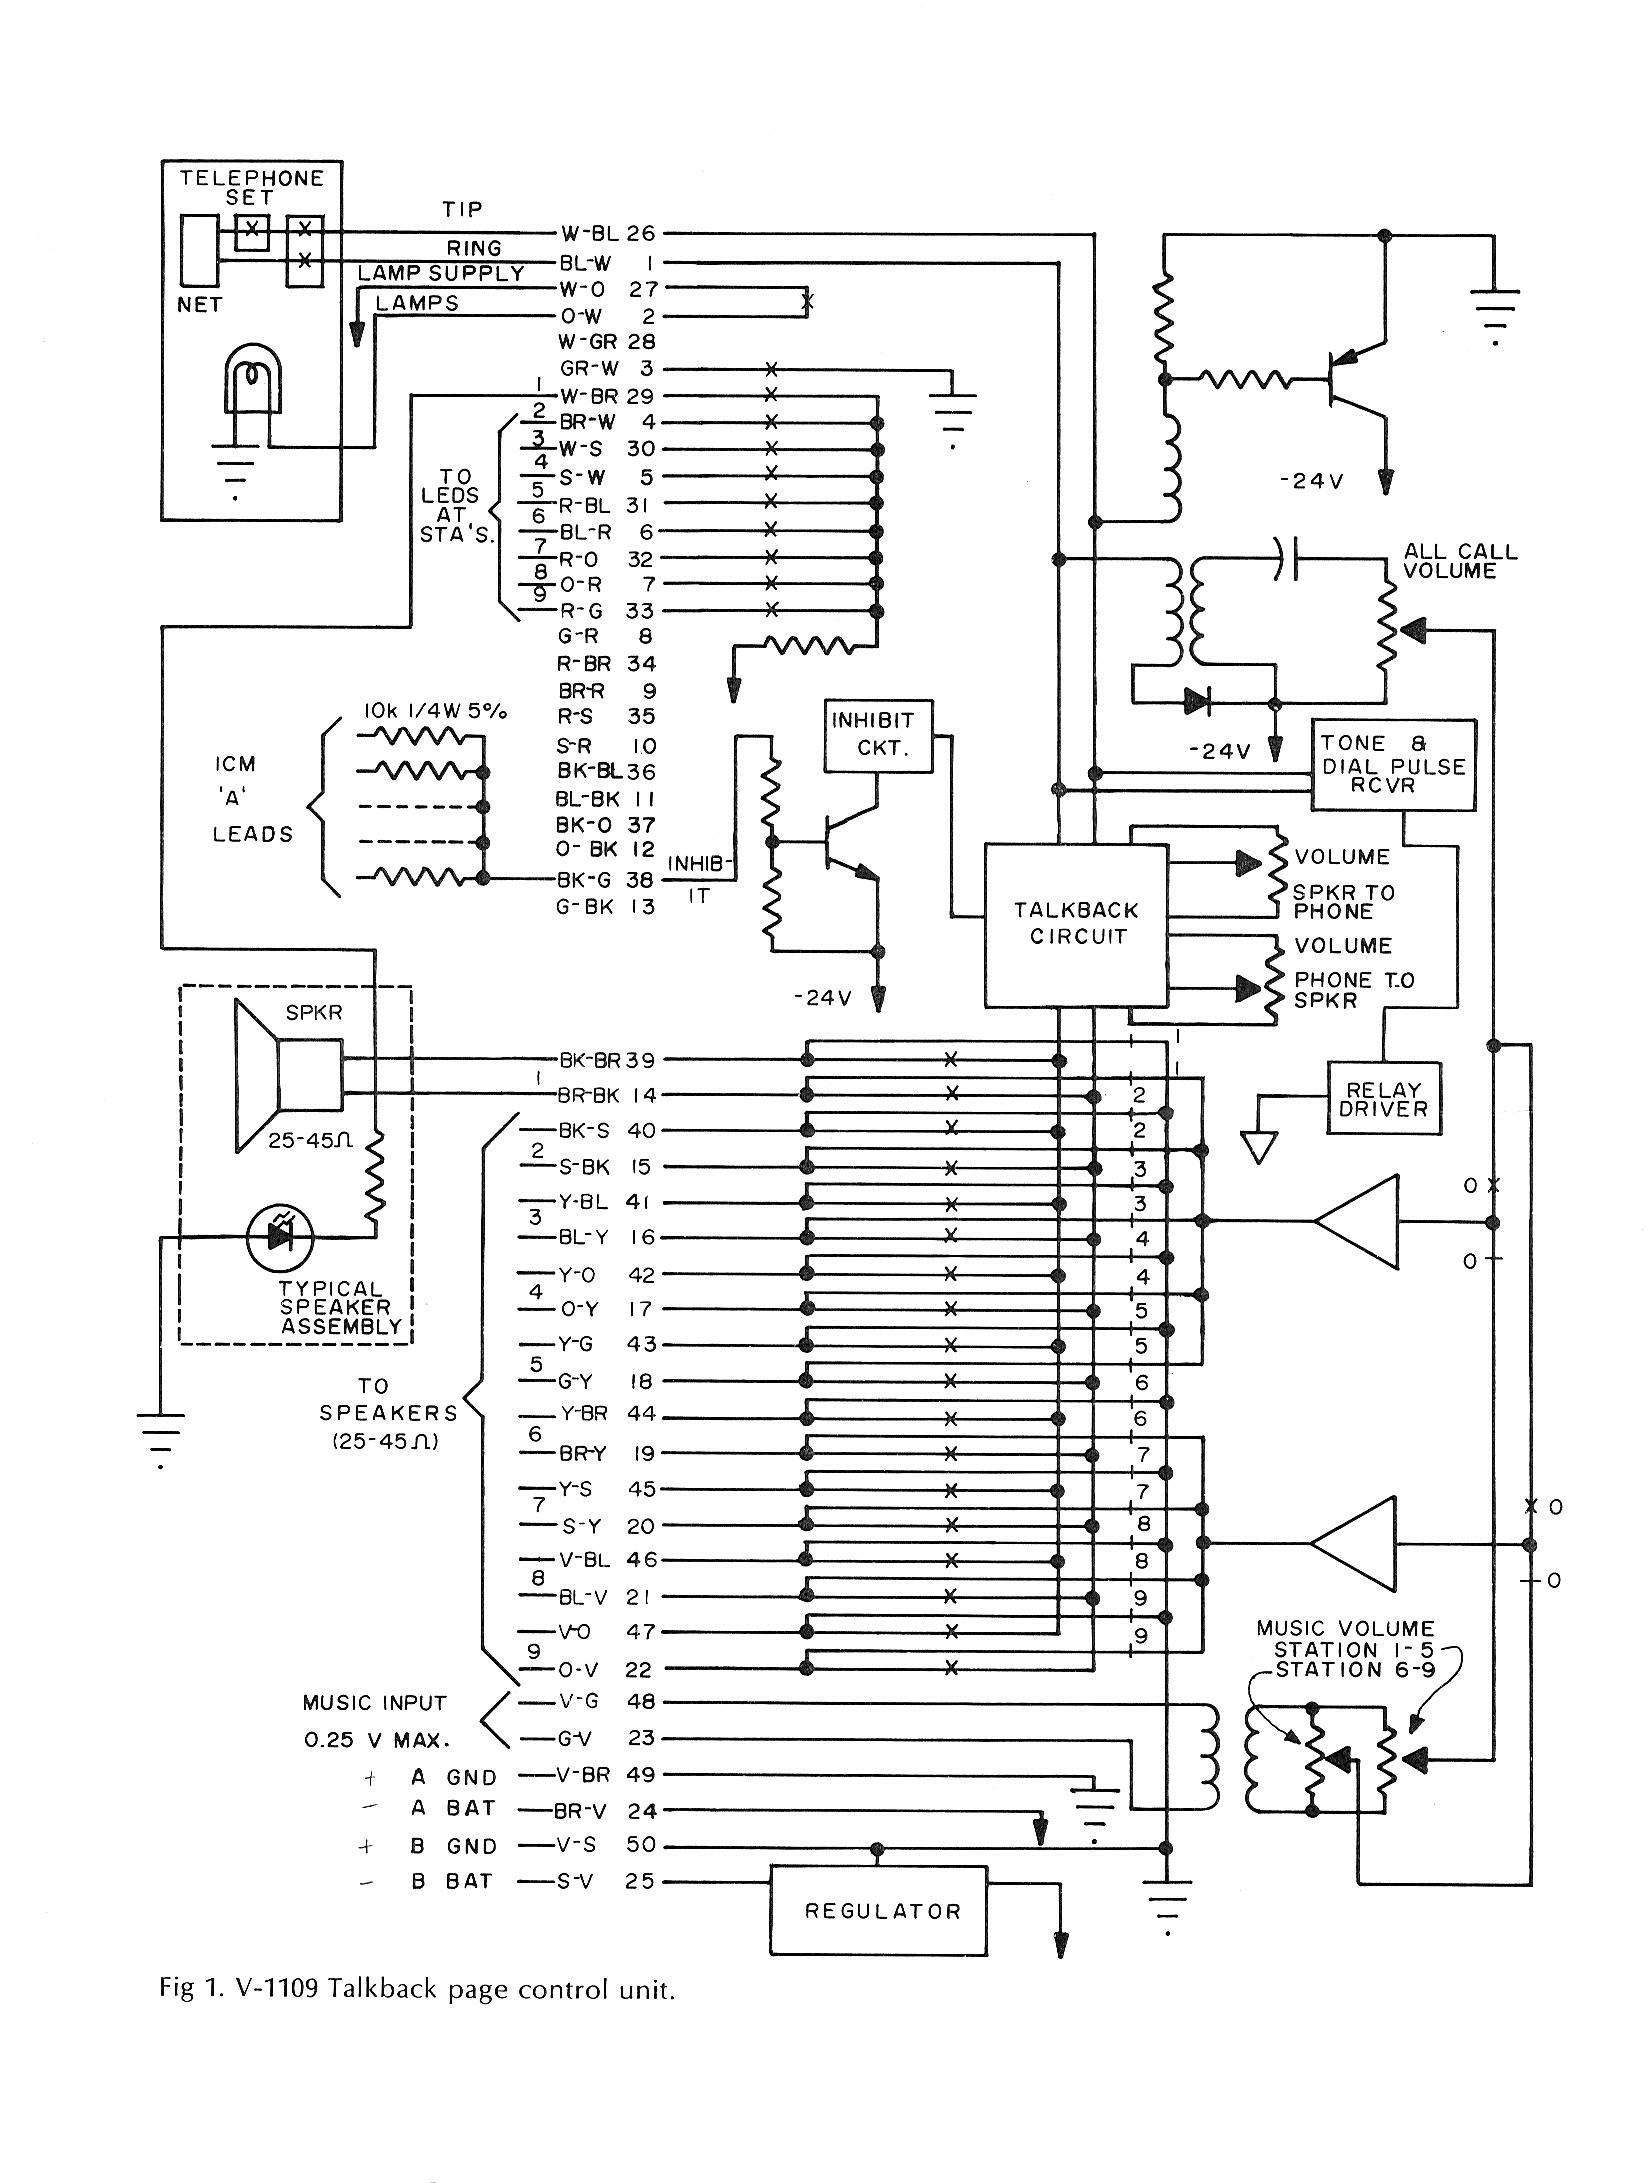 WRG-7488] Office Phone System Wiring Diagram on circuit diagram, telephone punch down diagram, computer diagram, telephone phone operator, phone diagram, installation diagram, telephone jack diagram, telephone pinout diagram, telephone grounding diagram, telephone color code, telephone remote control, telephone cable diagram, telephone magneto diagram, telephone parts list, telephone network diagram, telephone switch, electricians diagram, telephone line diagram, telephone wire connection diagram, telephone filter diagram,